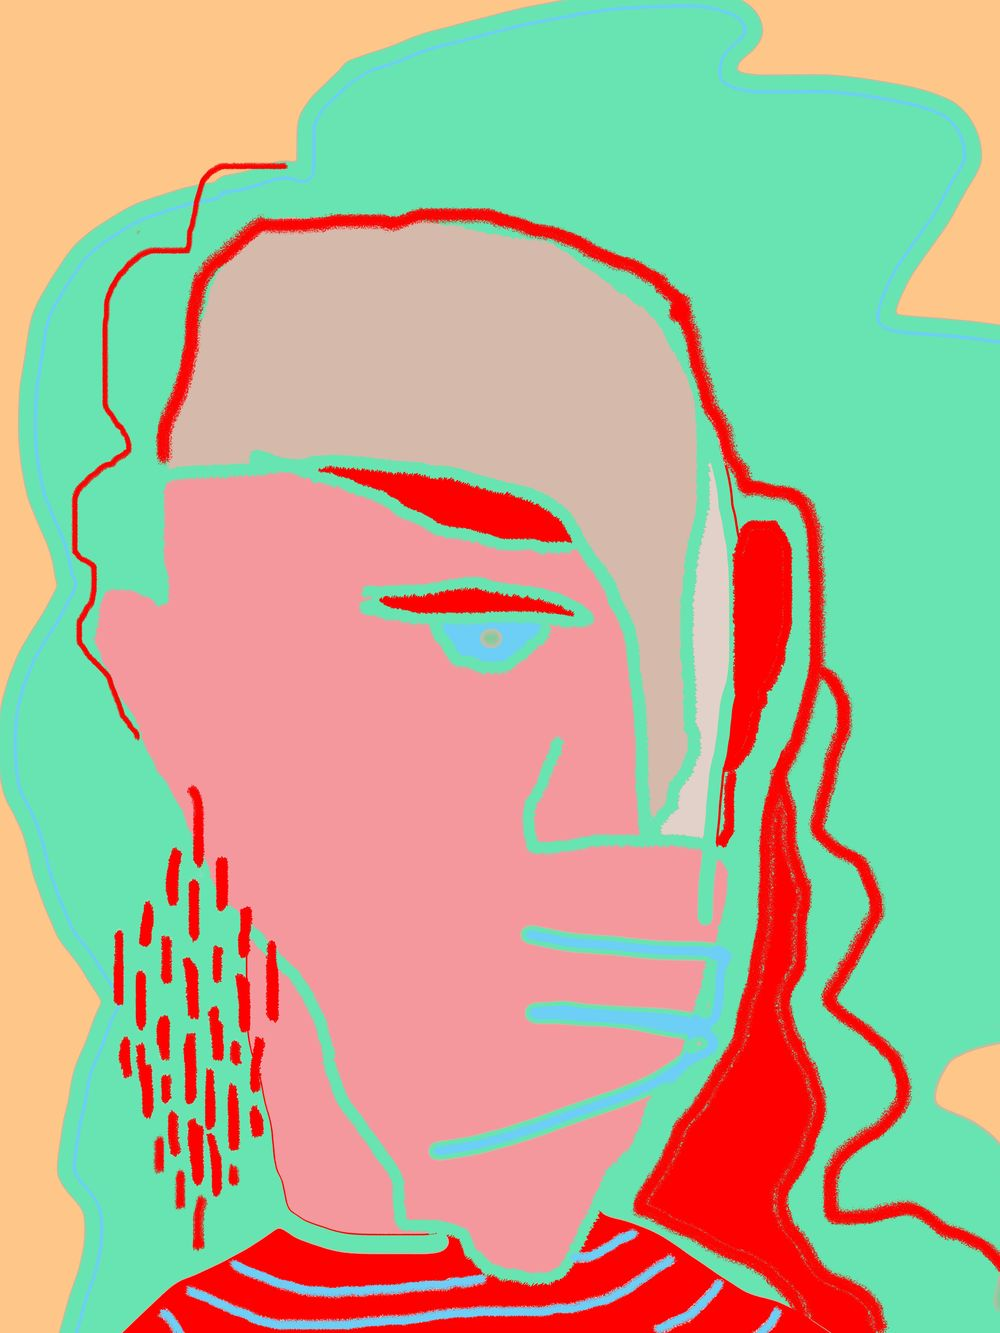 Intuitive illustration - image 8 - student project